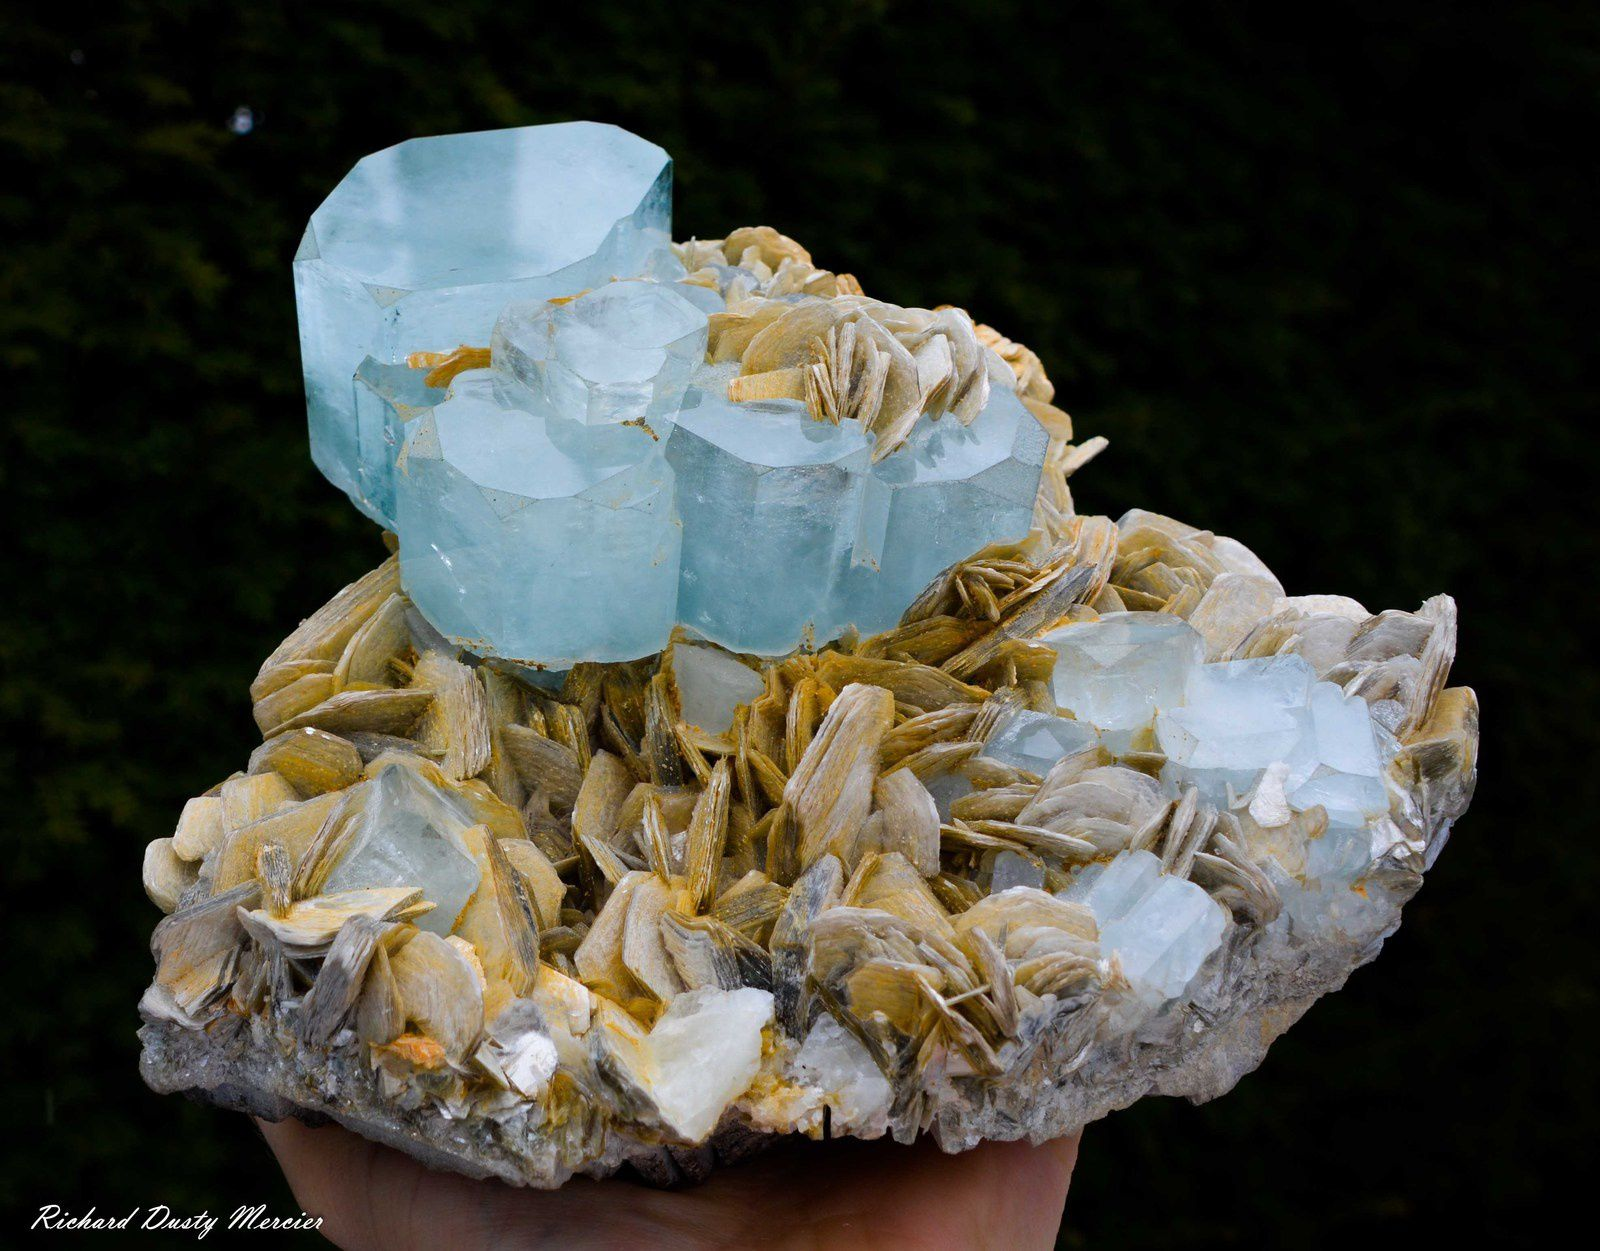 Aquamarine on Muscovite from Pakistan (Specimen and Photo: Richard Dusty Mercier)